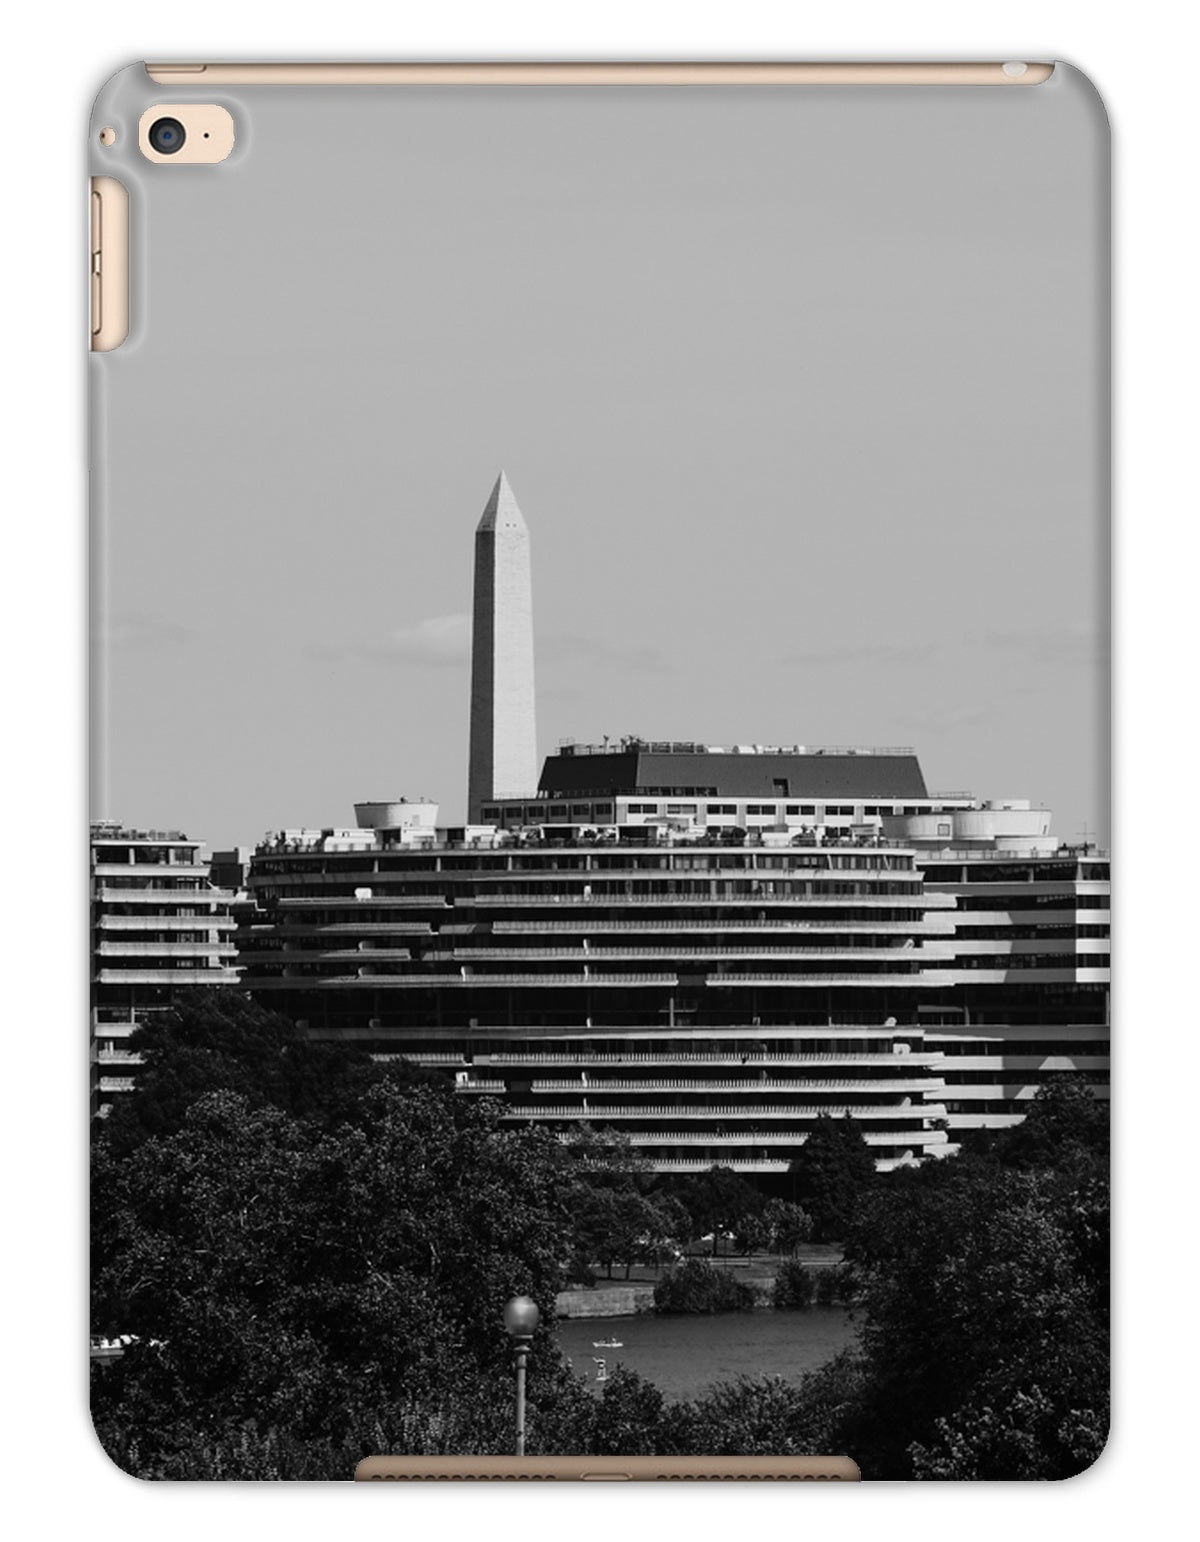 Watergate-01 Tablet Cases